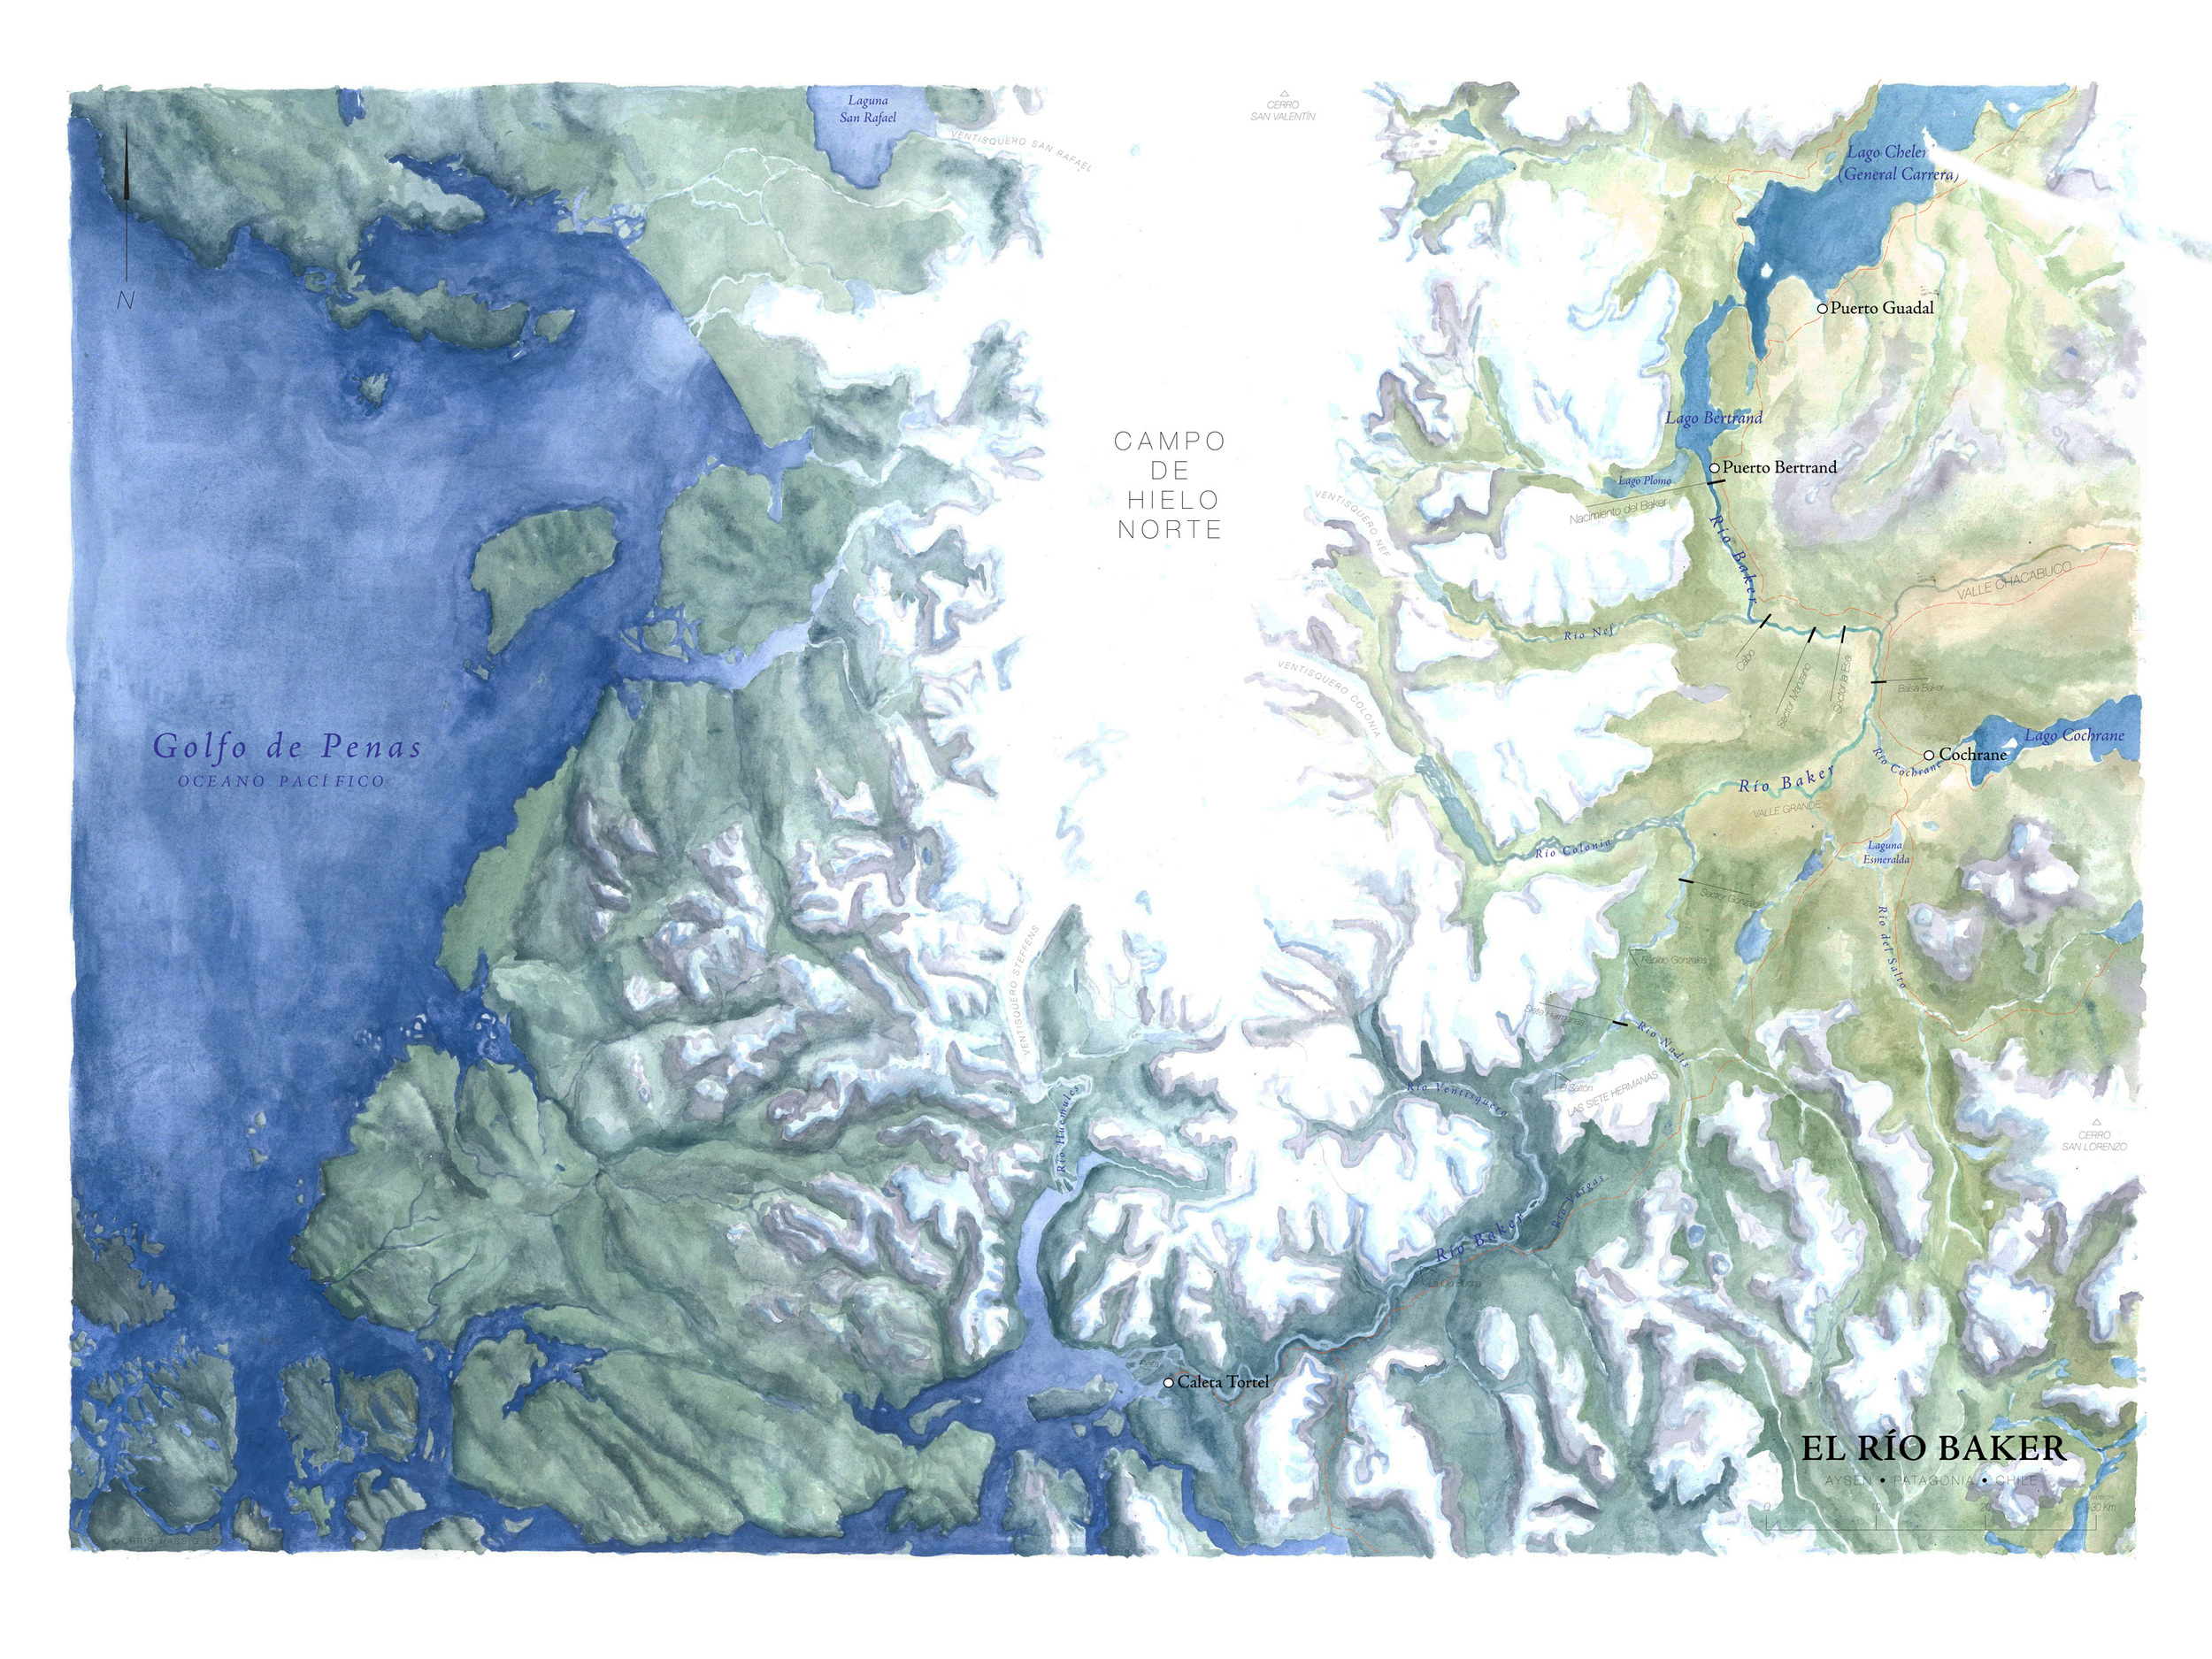 Map of Río Baker, Patagonia, Chile